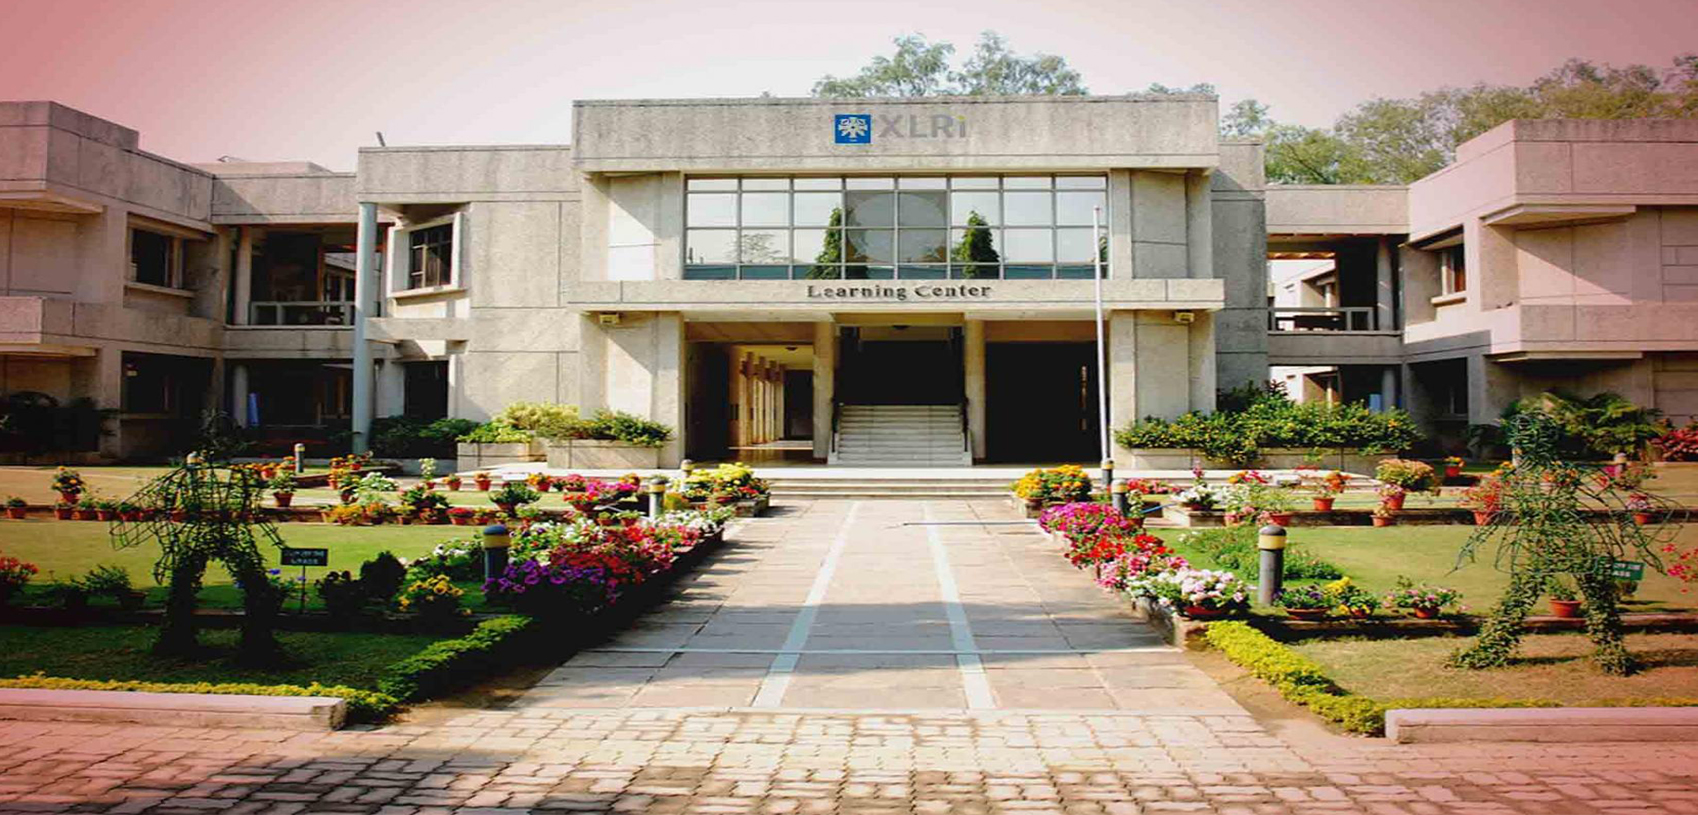 XLRI adds another feather to its cap, accredited by AACSB International